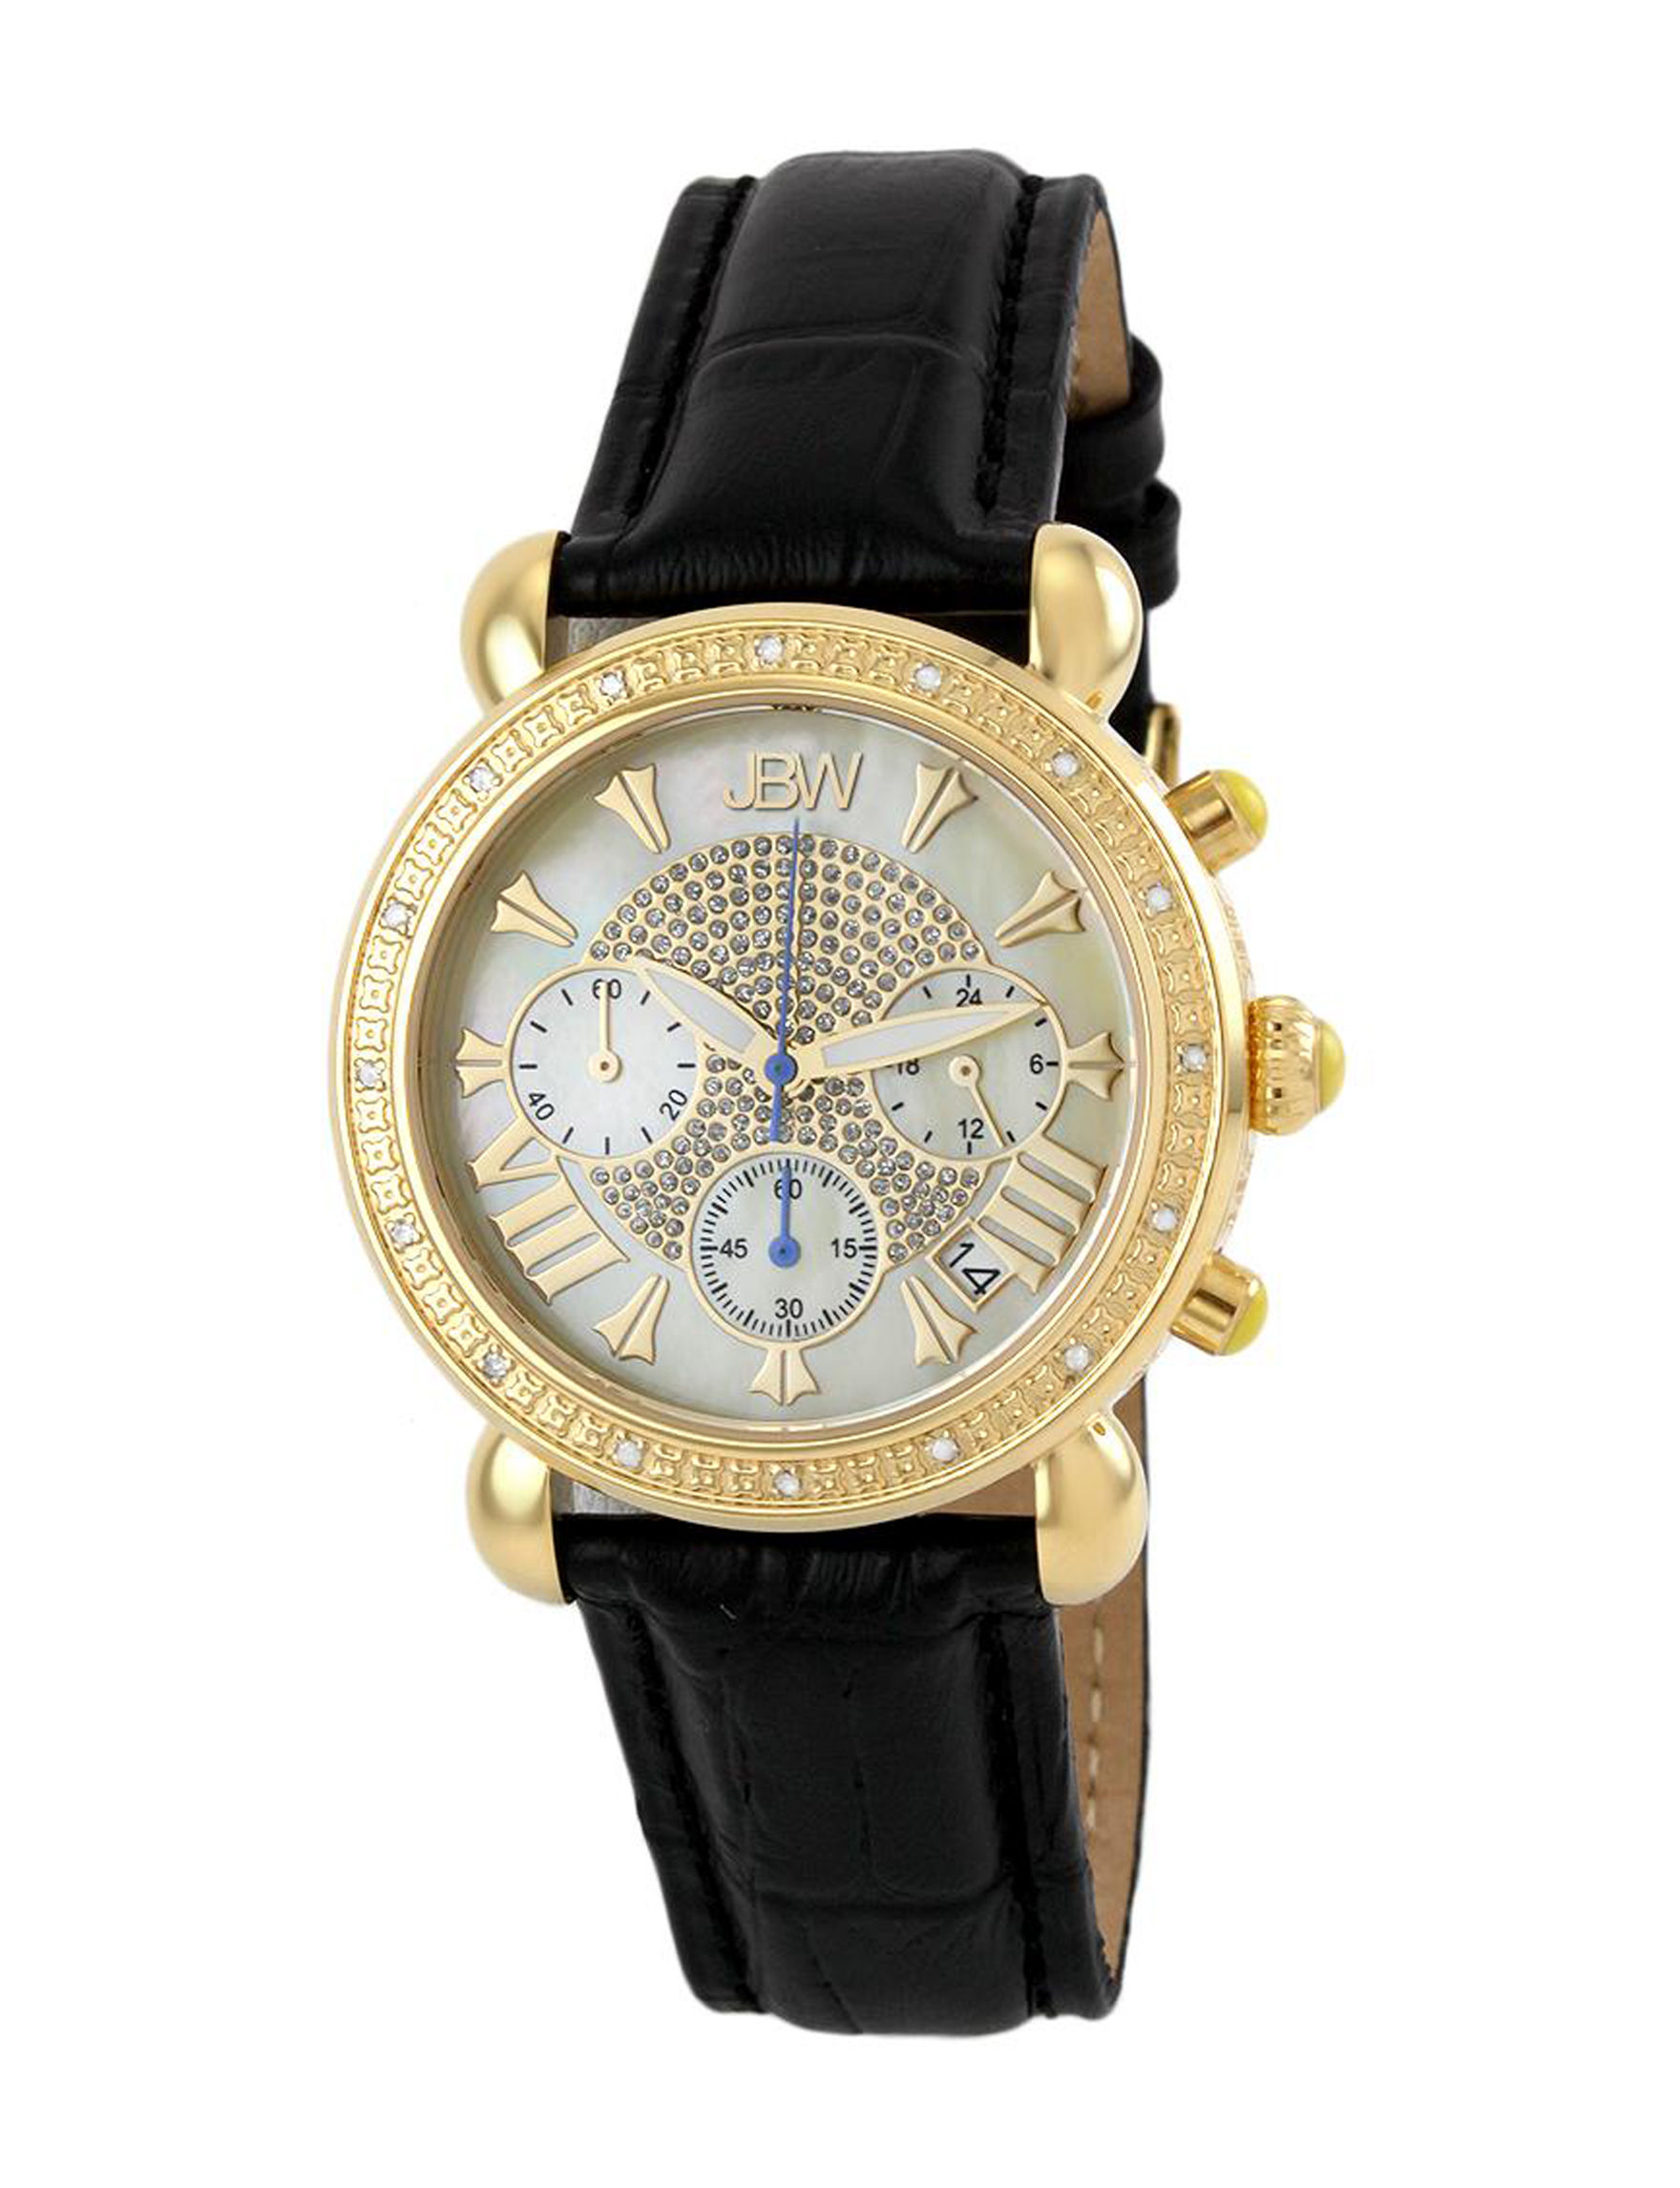 JBW Gold Fashion Watches